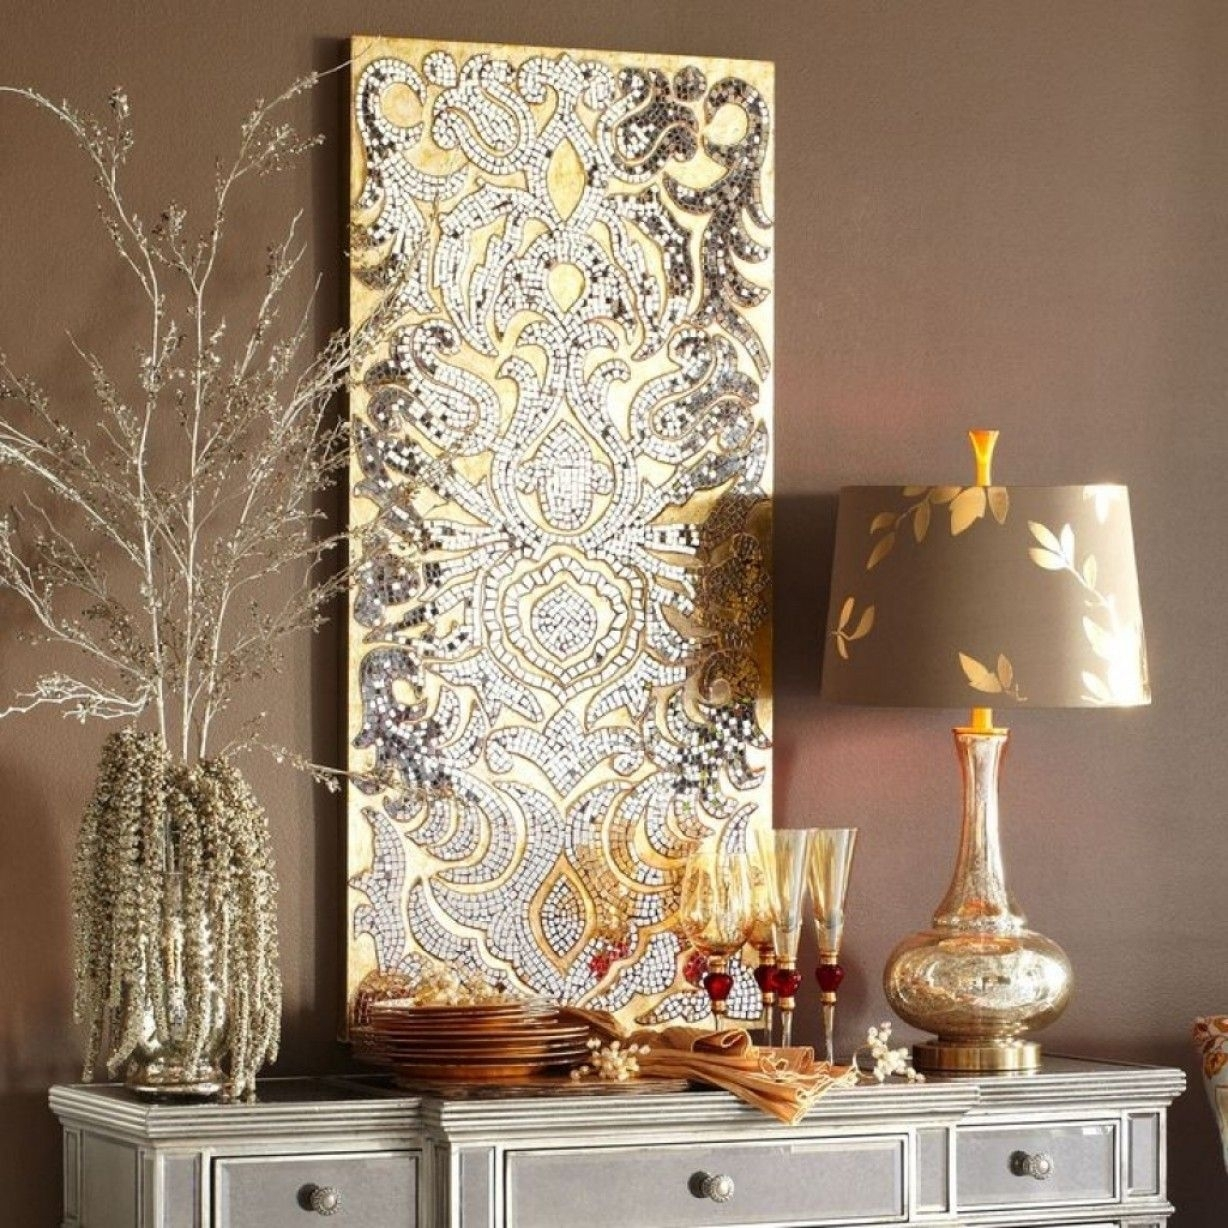 Stunning Pretty Mirror Mosaic Wall Art With Diy Decor Large Tile intended for Mirror Mosaic Wall Art (Image 20 of 20)